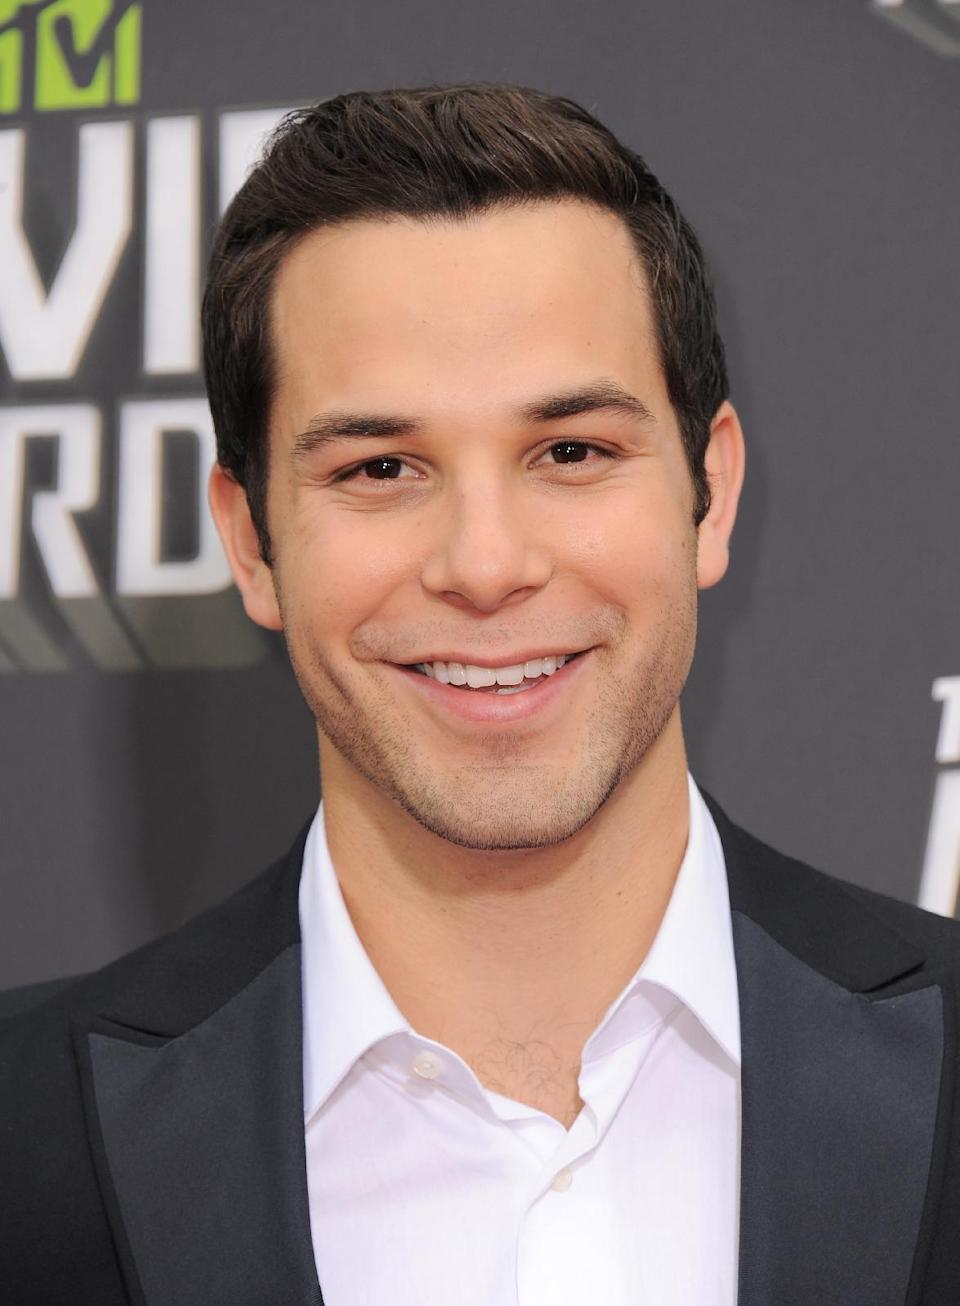 Skylar Astin arrives at the MTV Movie Awards in Sony Pictures Studio Lot in Culver City, Calif., on Sunday April 14, 2013. (Photo by Jordan Strauss/Invision/AP)